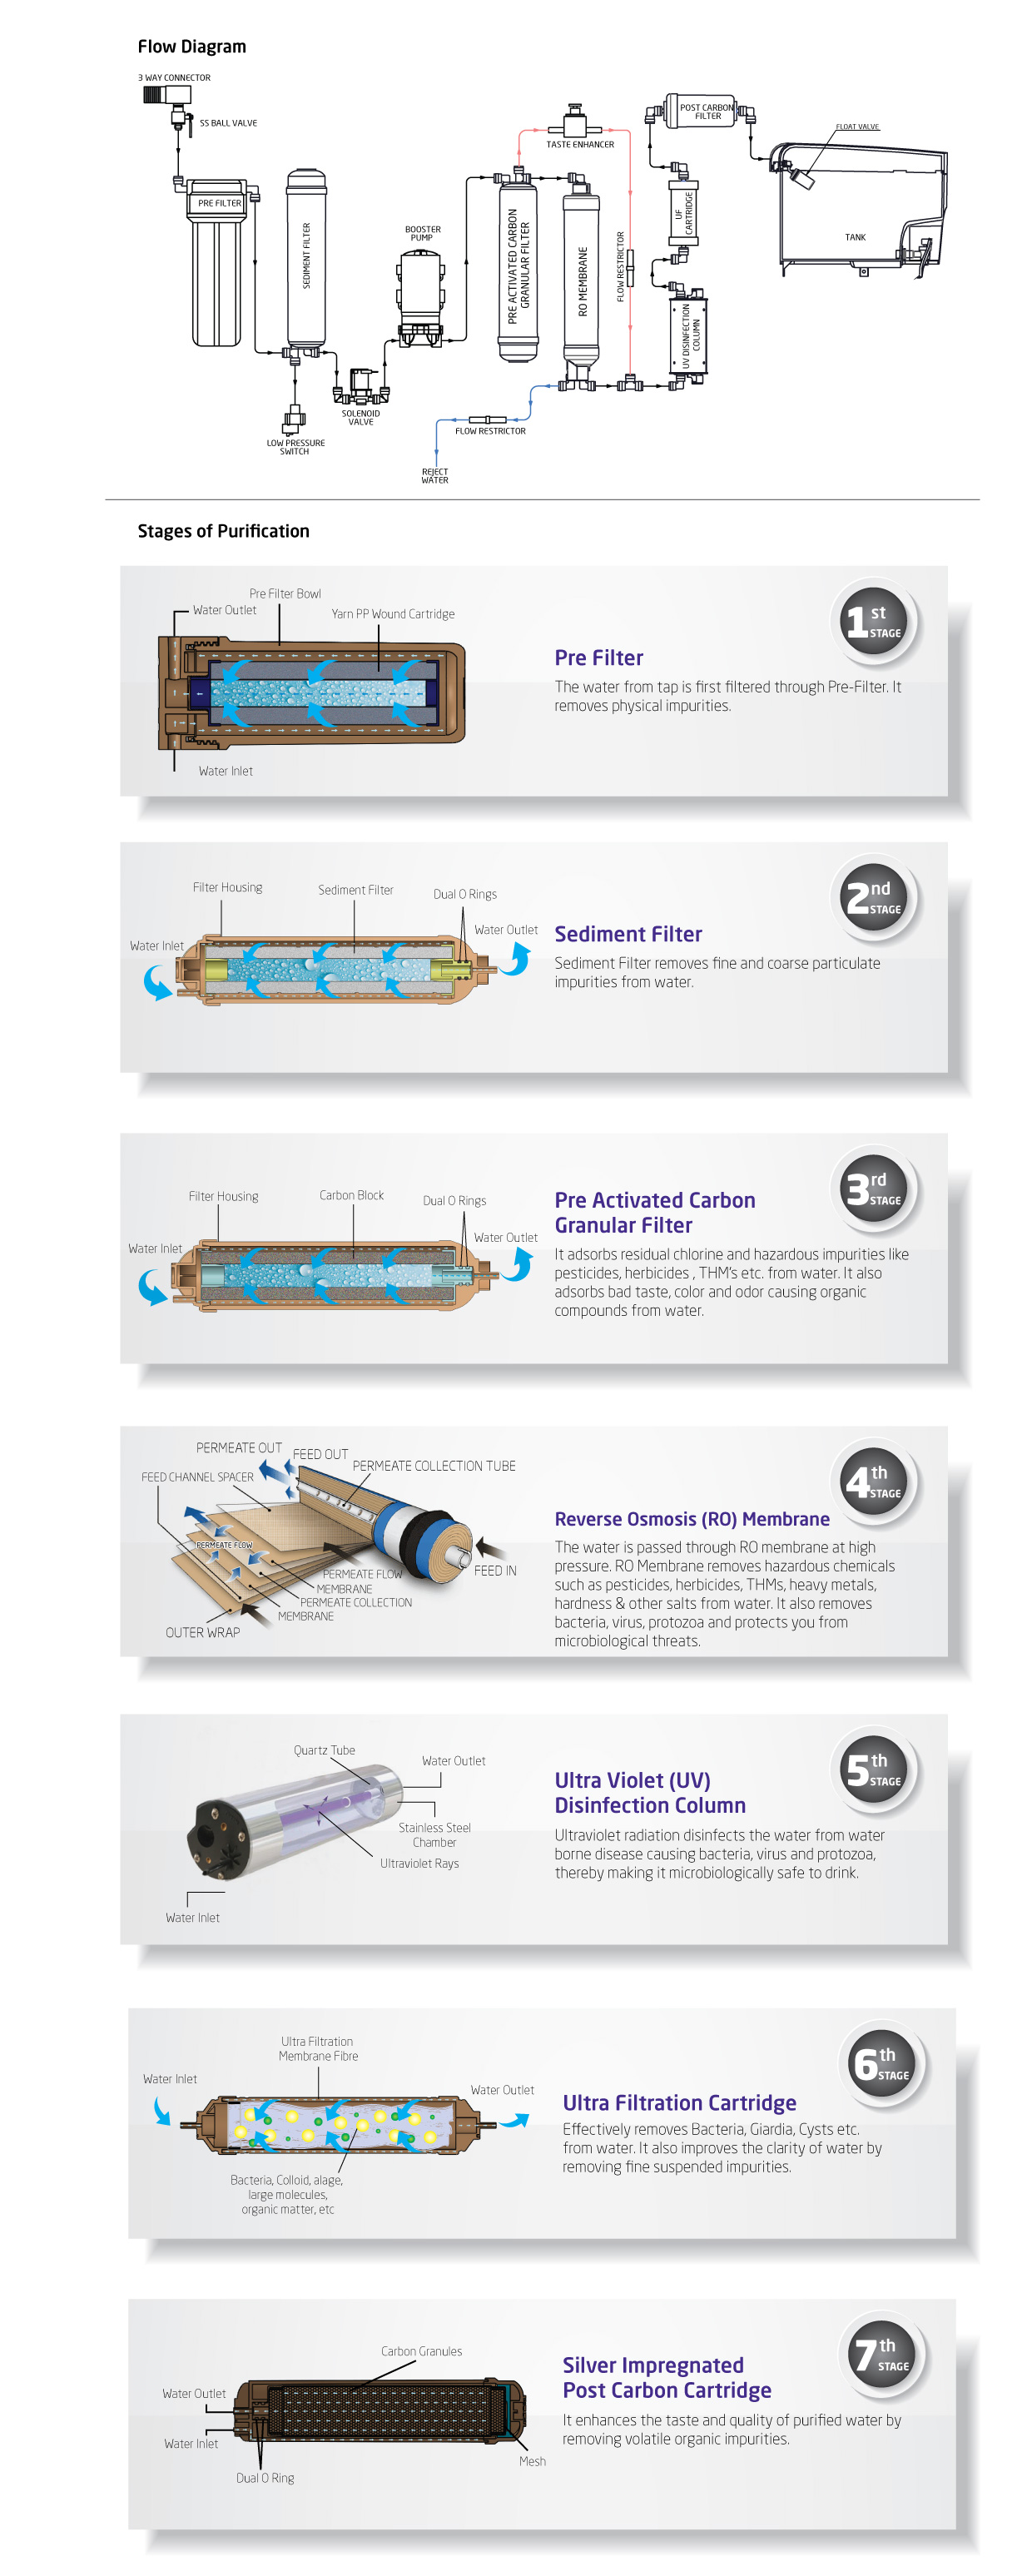 Rent a RO Water Purifier Steps and Procedure